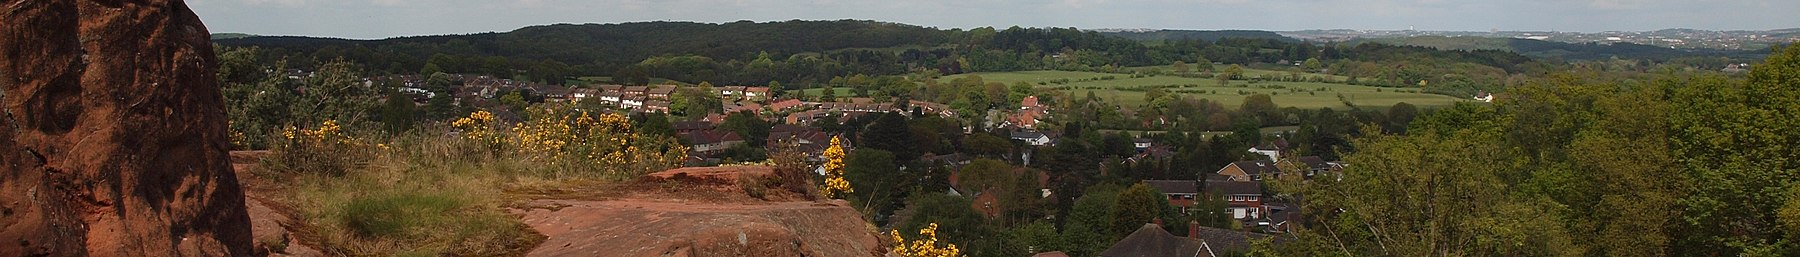 WV banner Staffordshire Kinver panorama.jpg